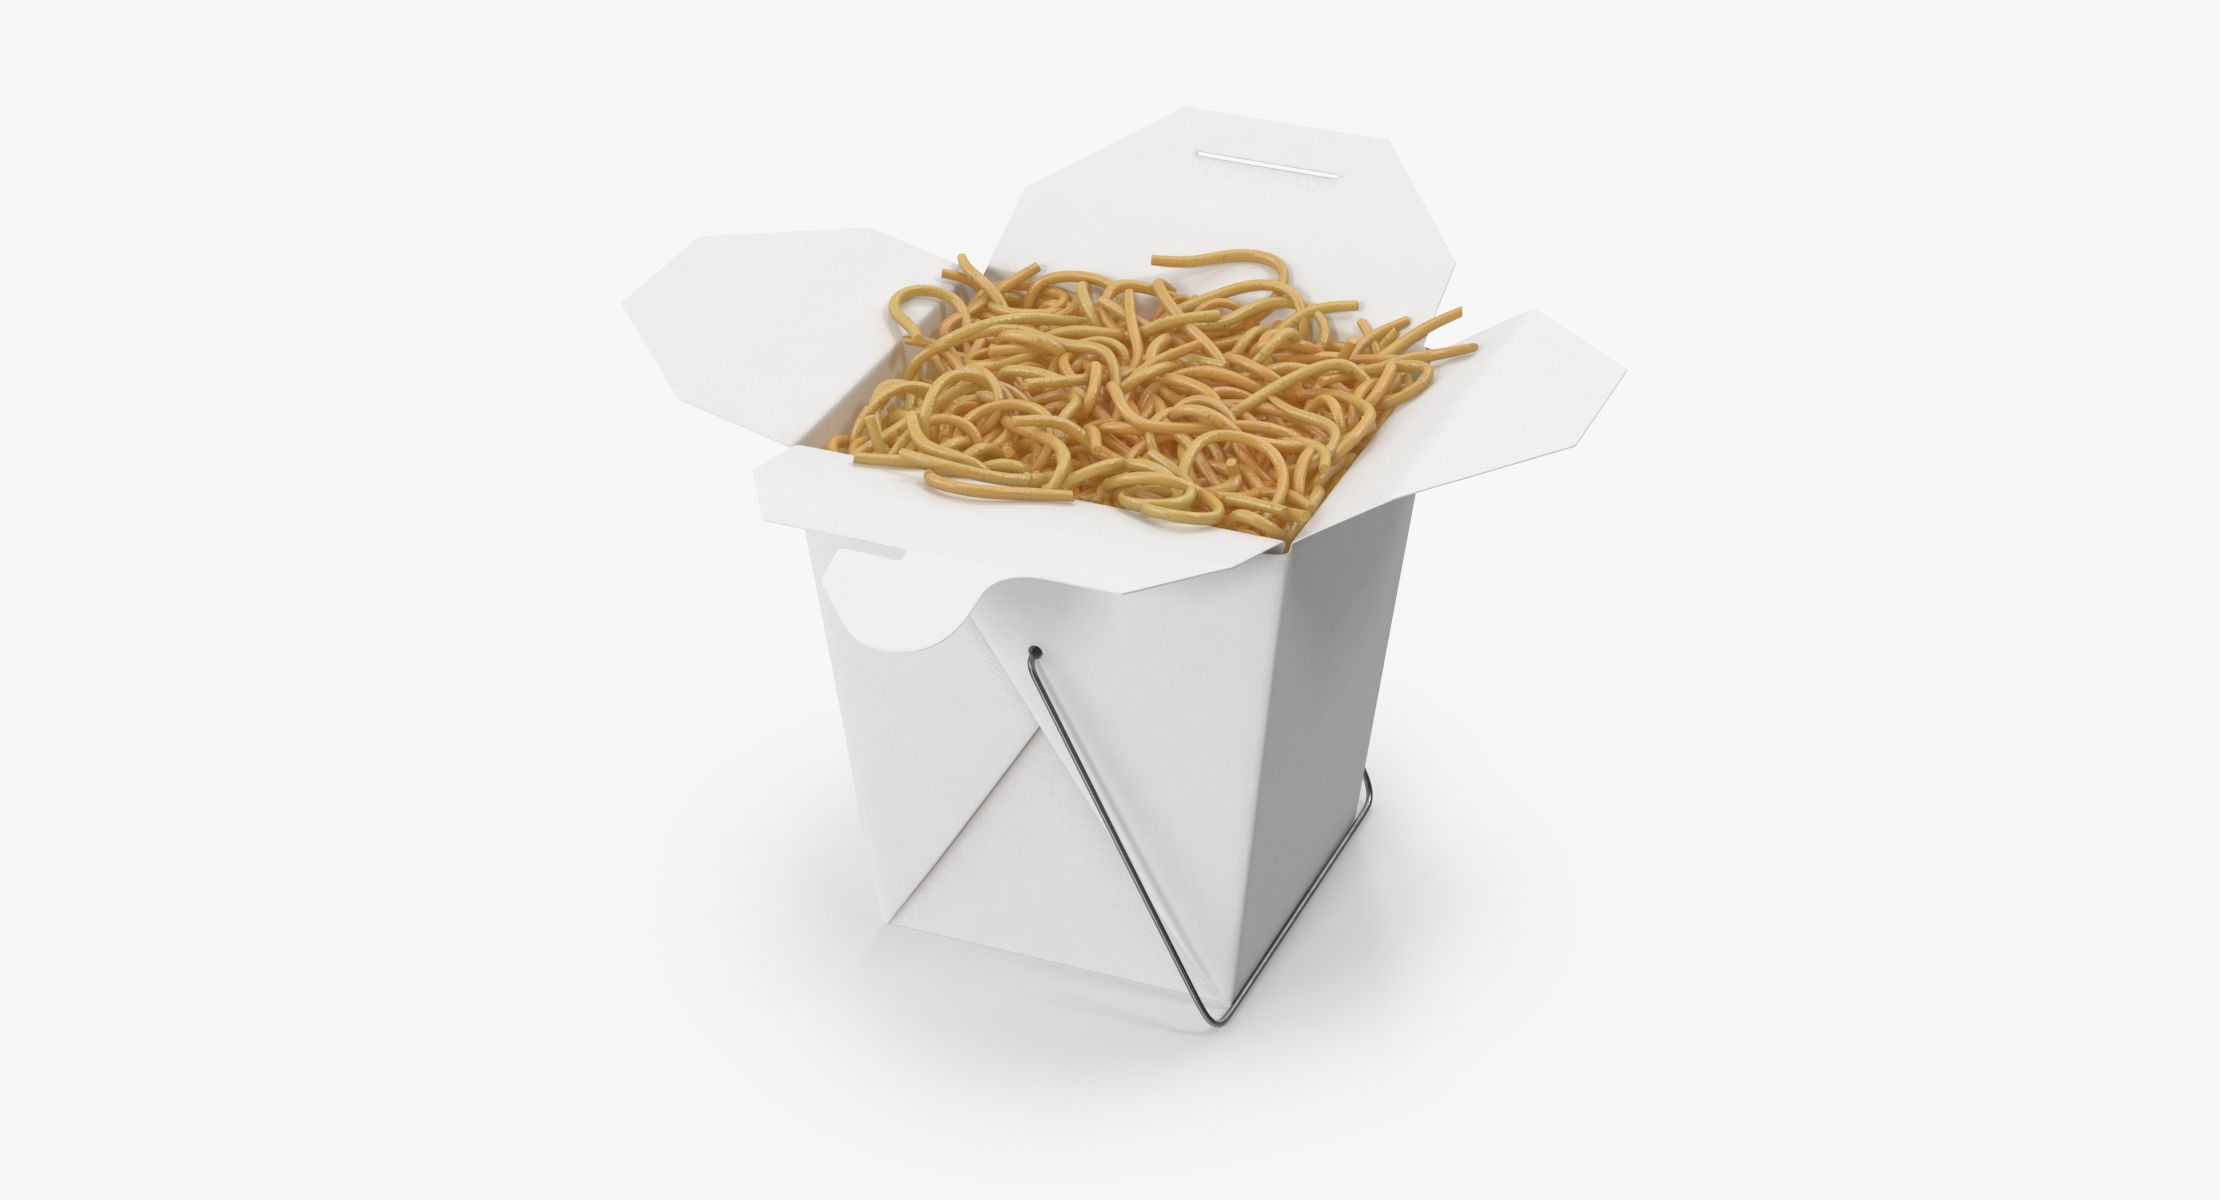 Chinese Takeout Box Open With Noodles - reel 1